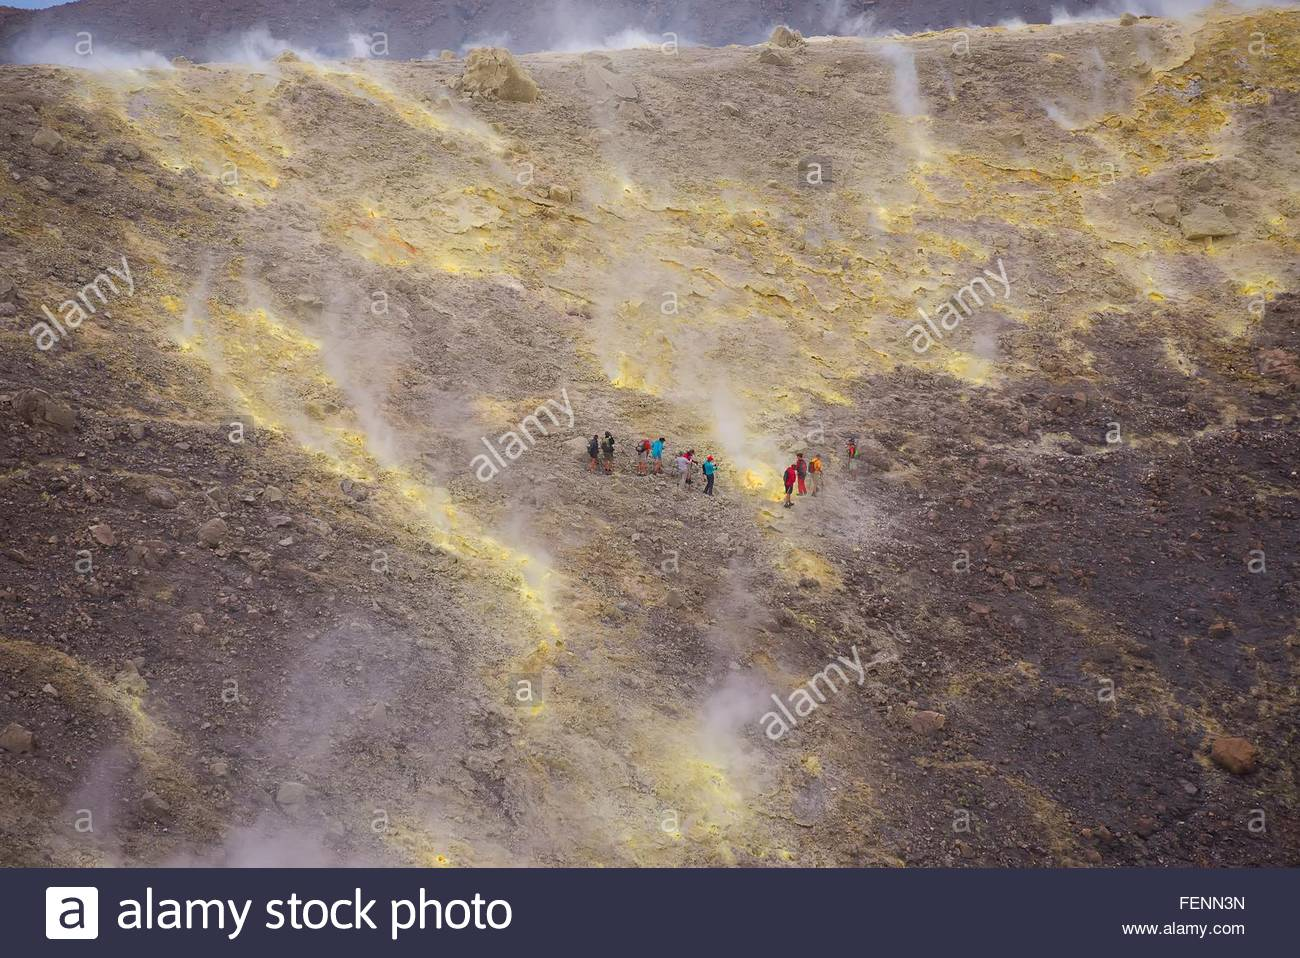 Group of tourists walking through fumarole smoke at Gran Cratere, Vulcano Island, Aeolian Islands, Sicily, Italy - Stock Image